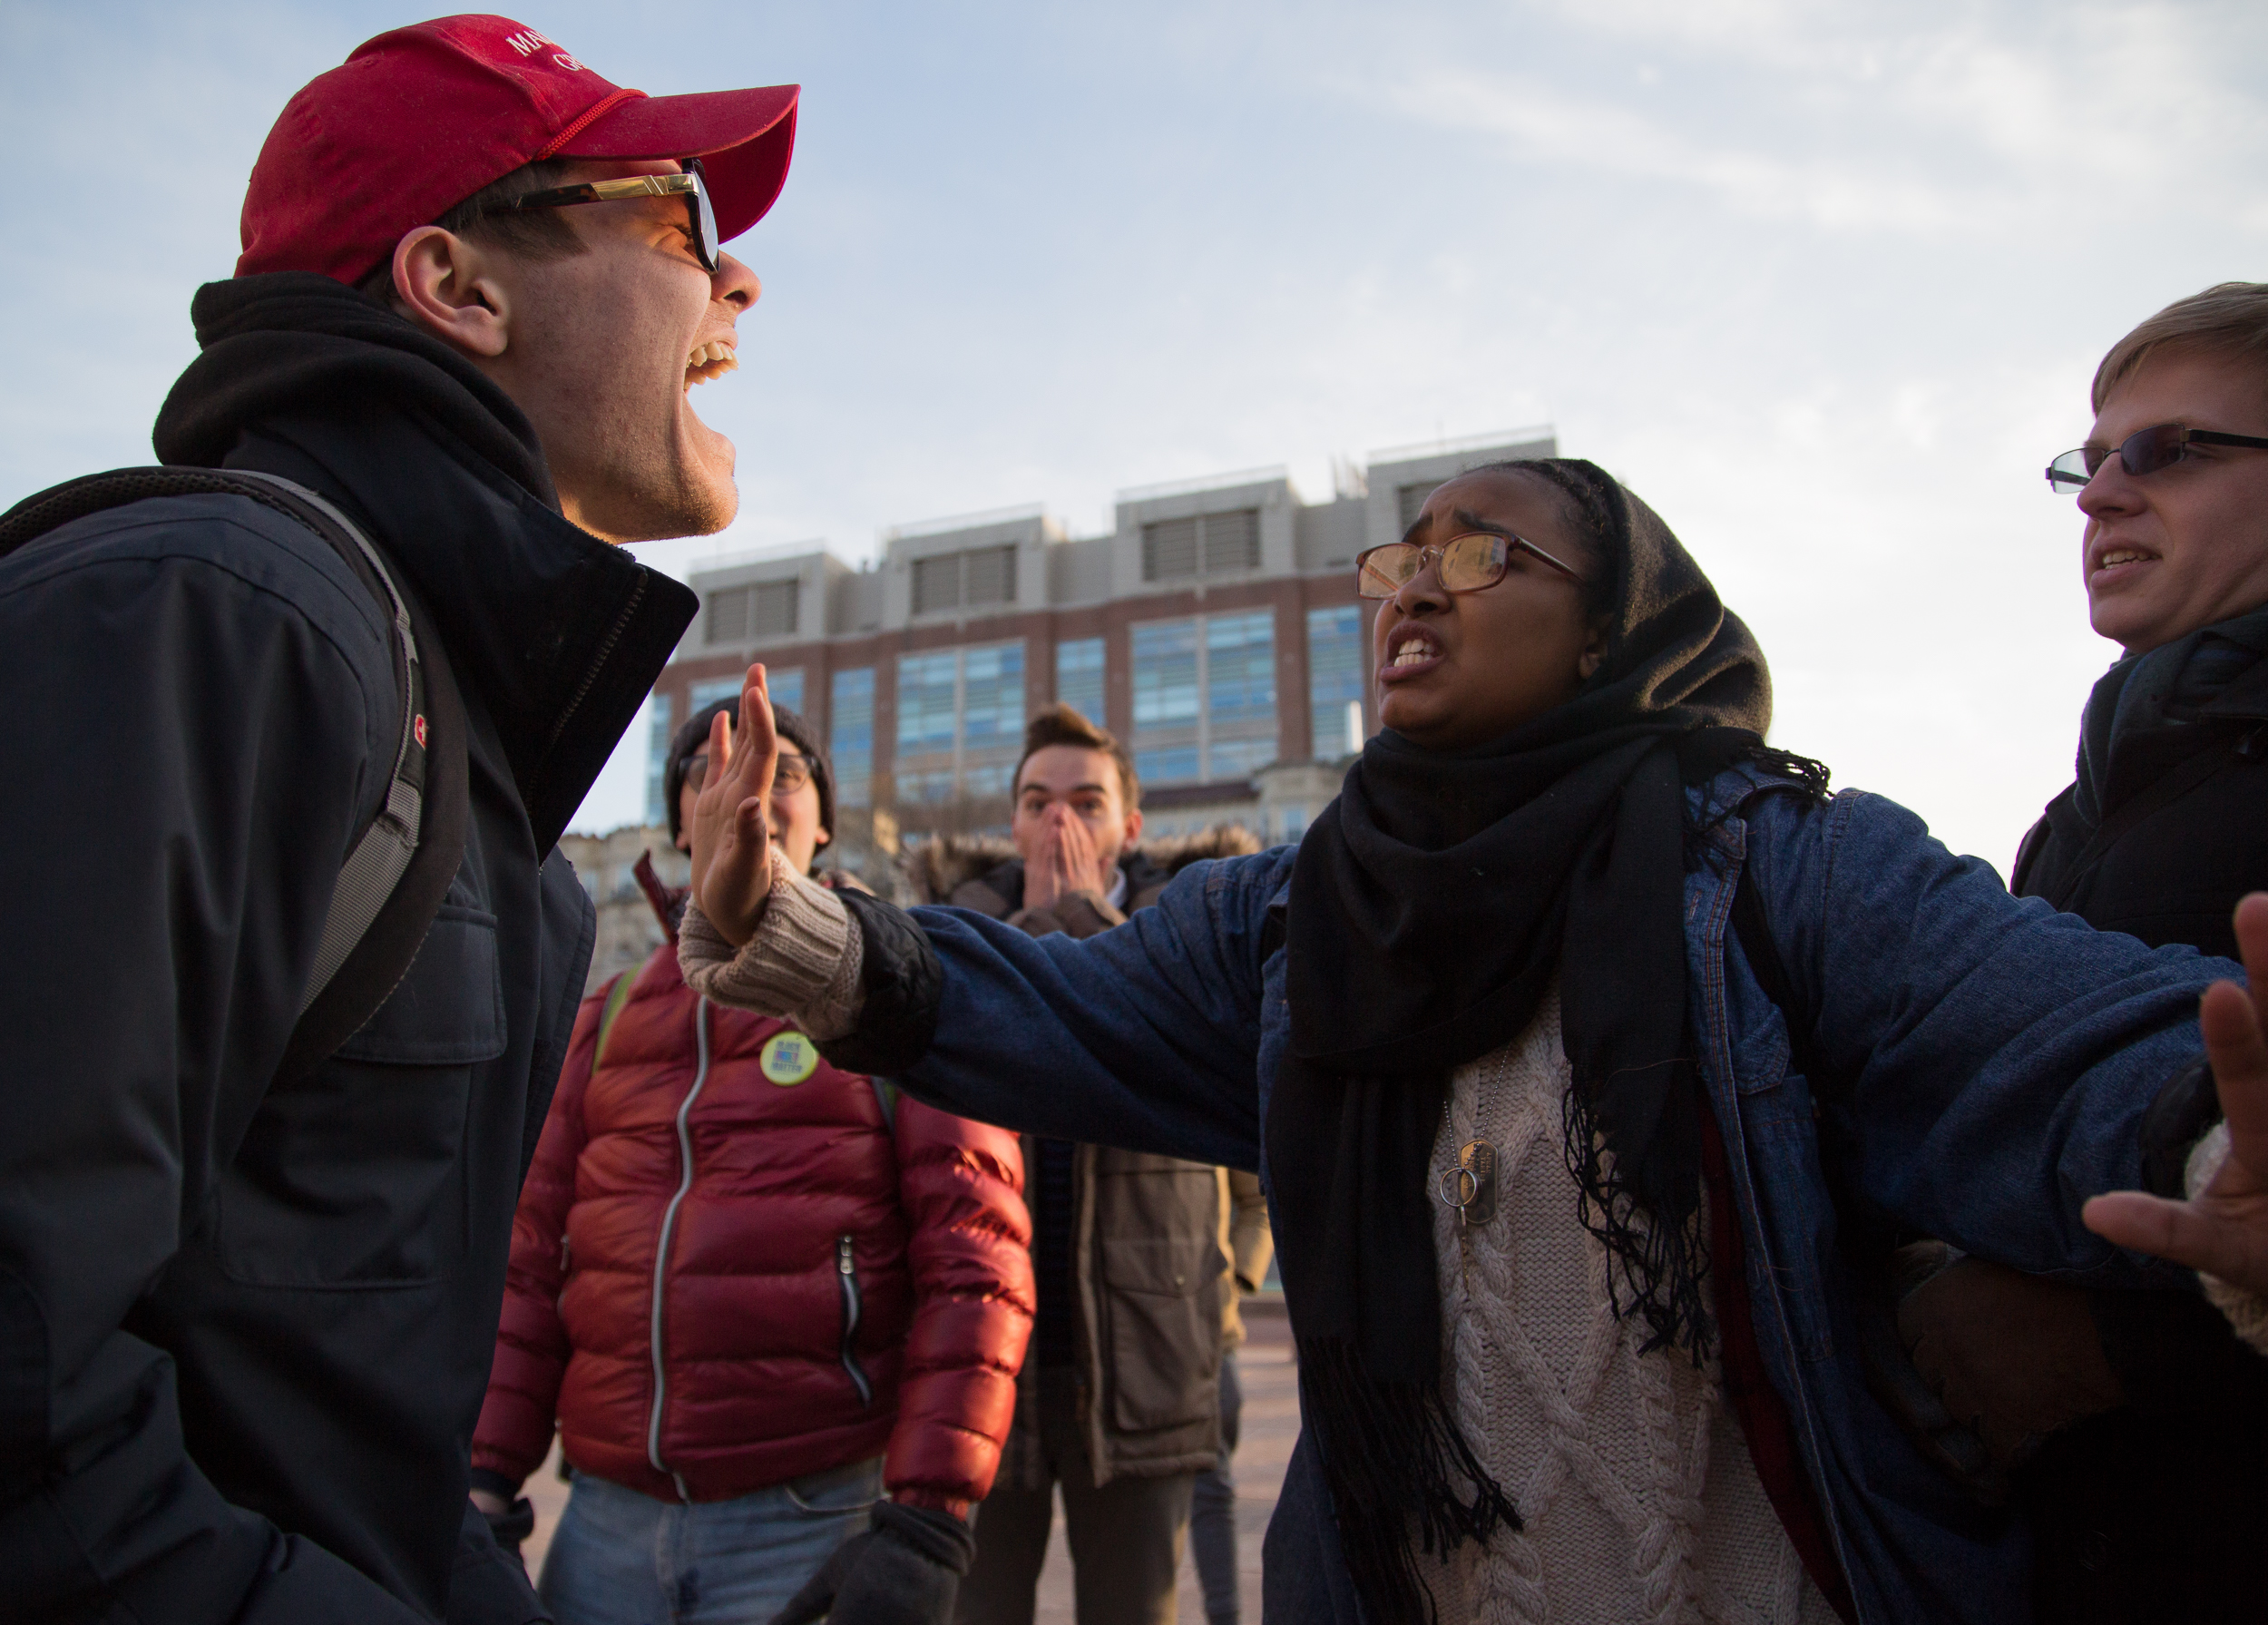 """Boston University Freshman and Trump Supporter Nicholas Fuentes (left) laughs as he is confronted by a protester during the """"No Ban No Wall: Rally Against Xenophobia"""" on Jan. 30, 2017 in Boston. The protest was one of many throughout the country in response to President Trump's executive order to prohibit travelers from certain countries."""